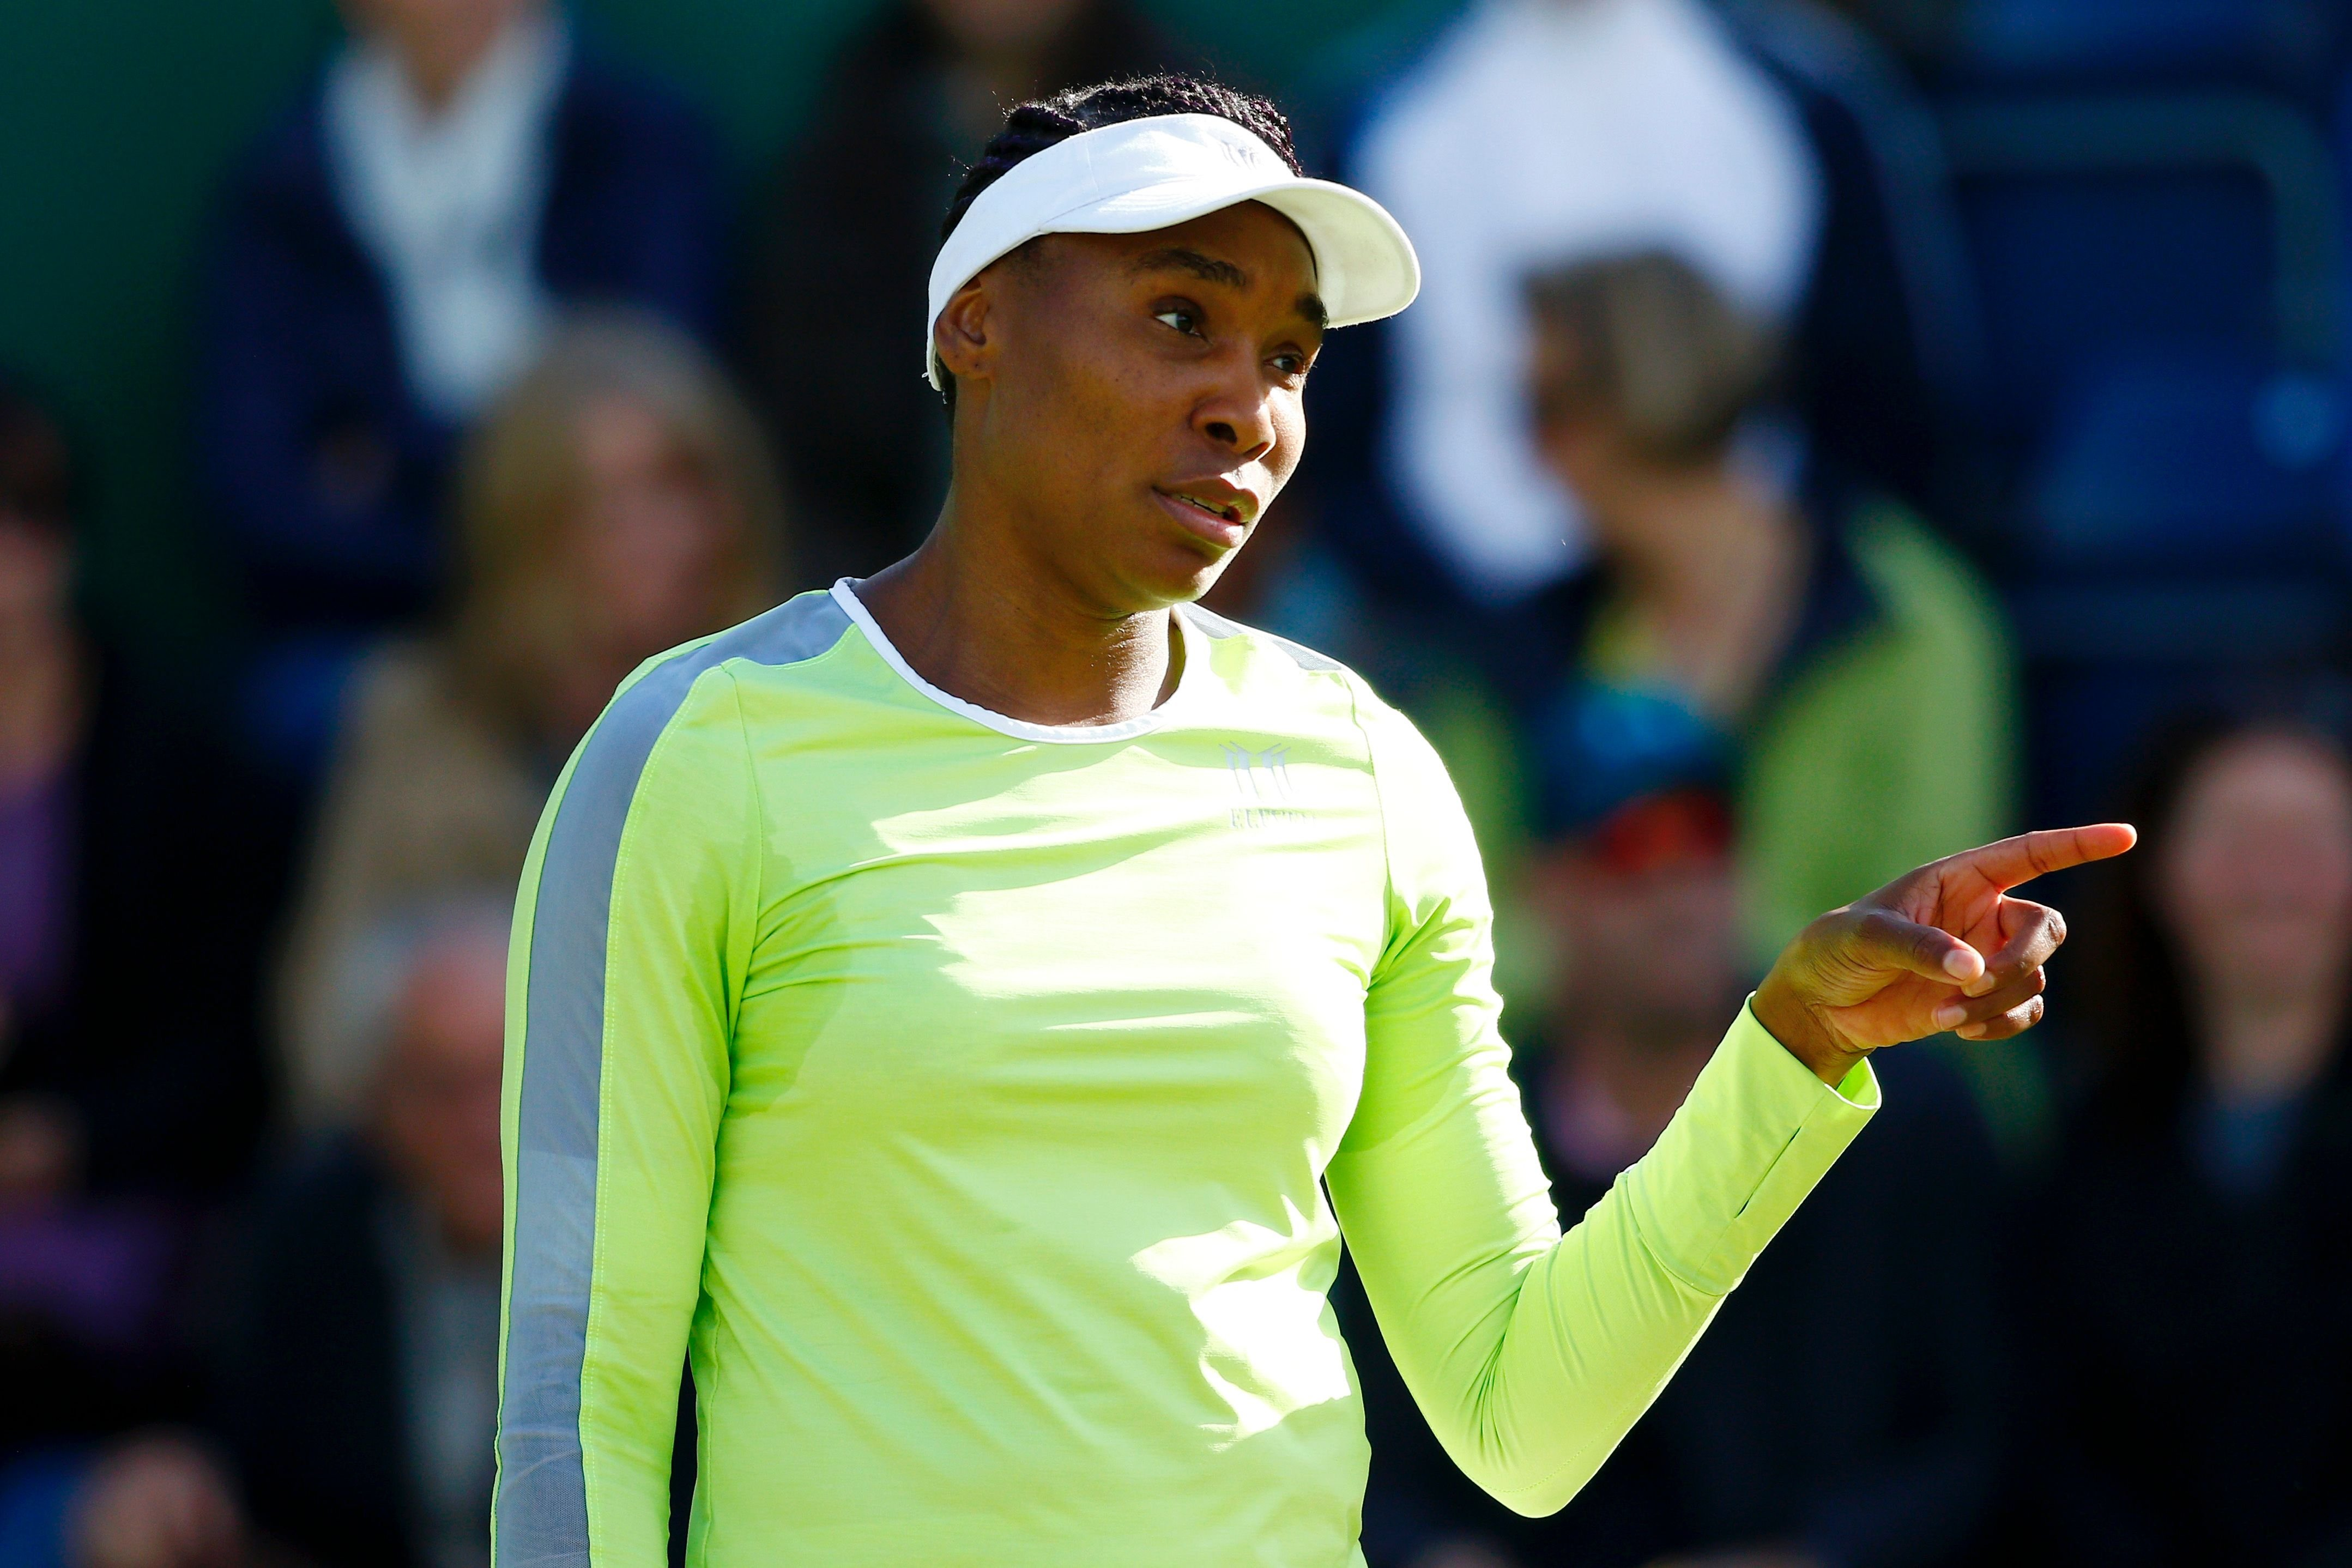 Venus Williams of the USA reacts during her second round match against Qiang Wang of China during day four of the Nature Valley Classic at Edgbaston Priory Club on June 20, 2019. | Photo: Getty Images